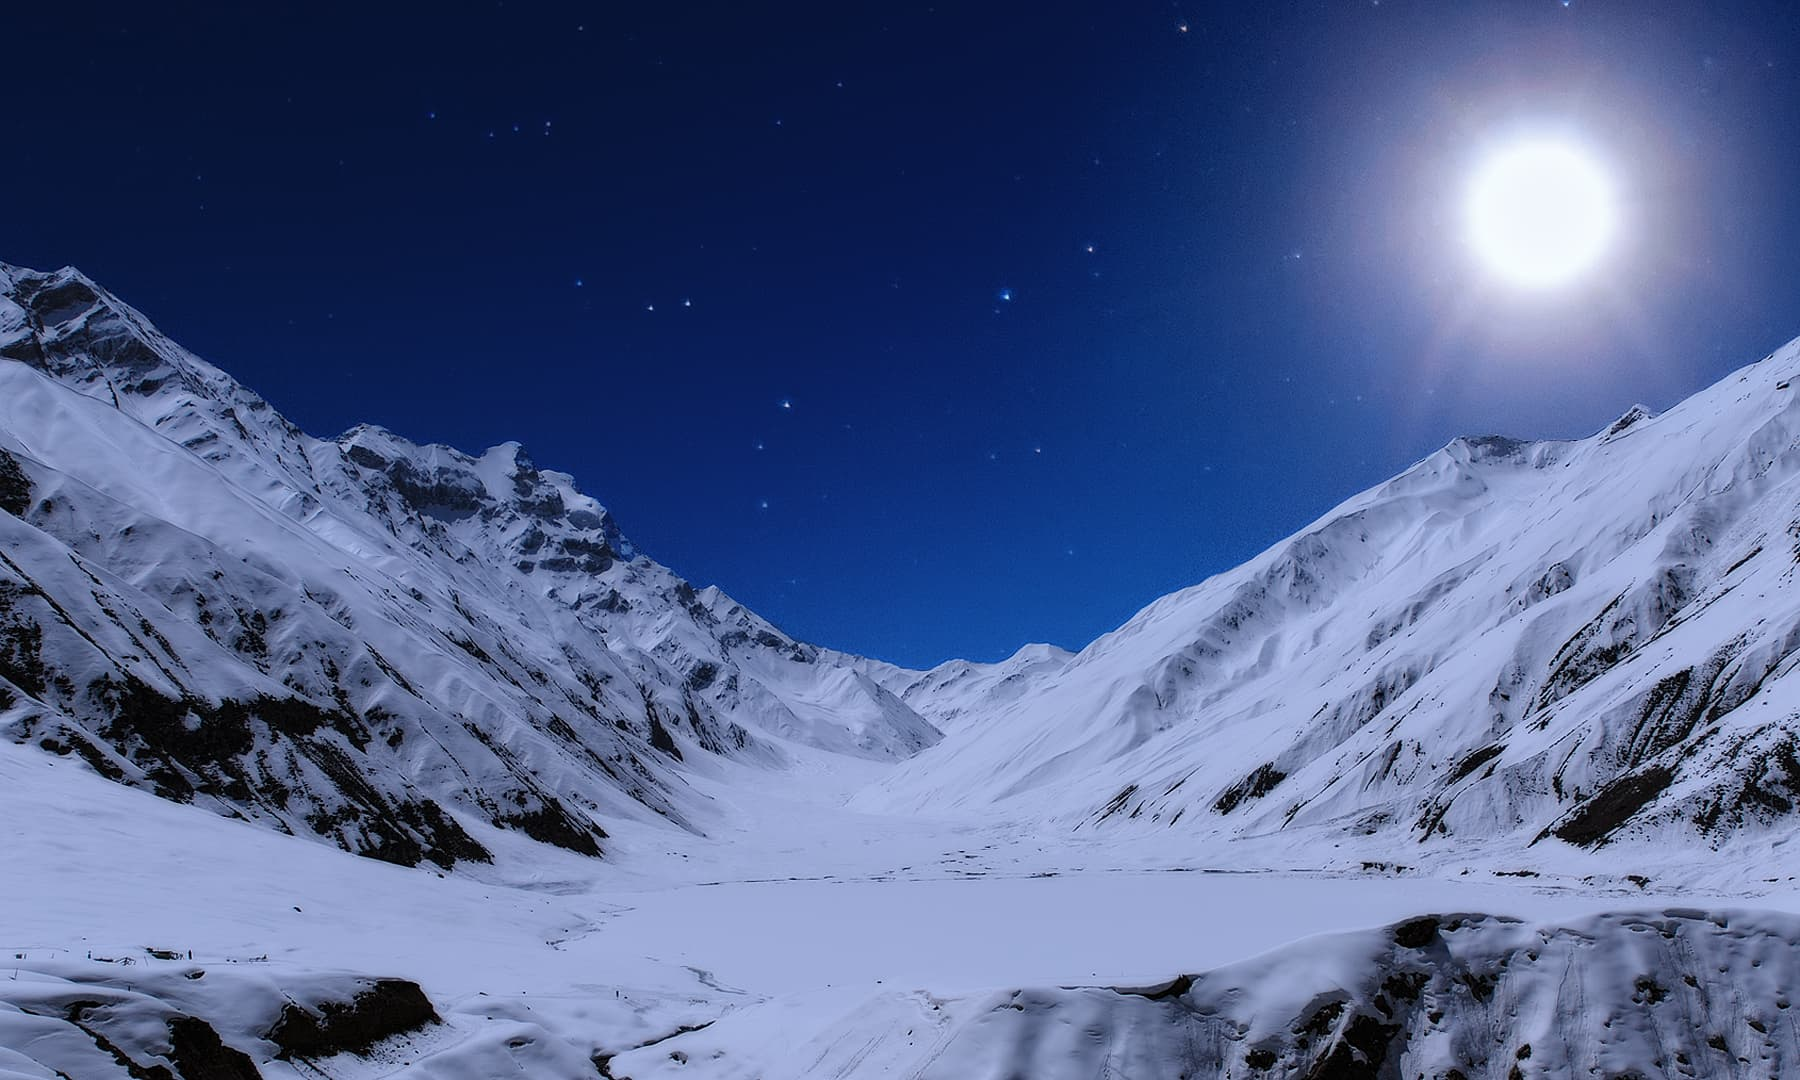 A frozen Lake Saif-ul-Malook under the moon.